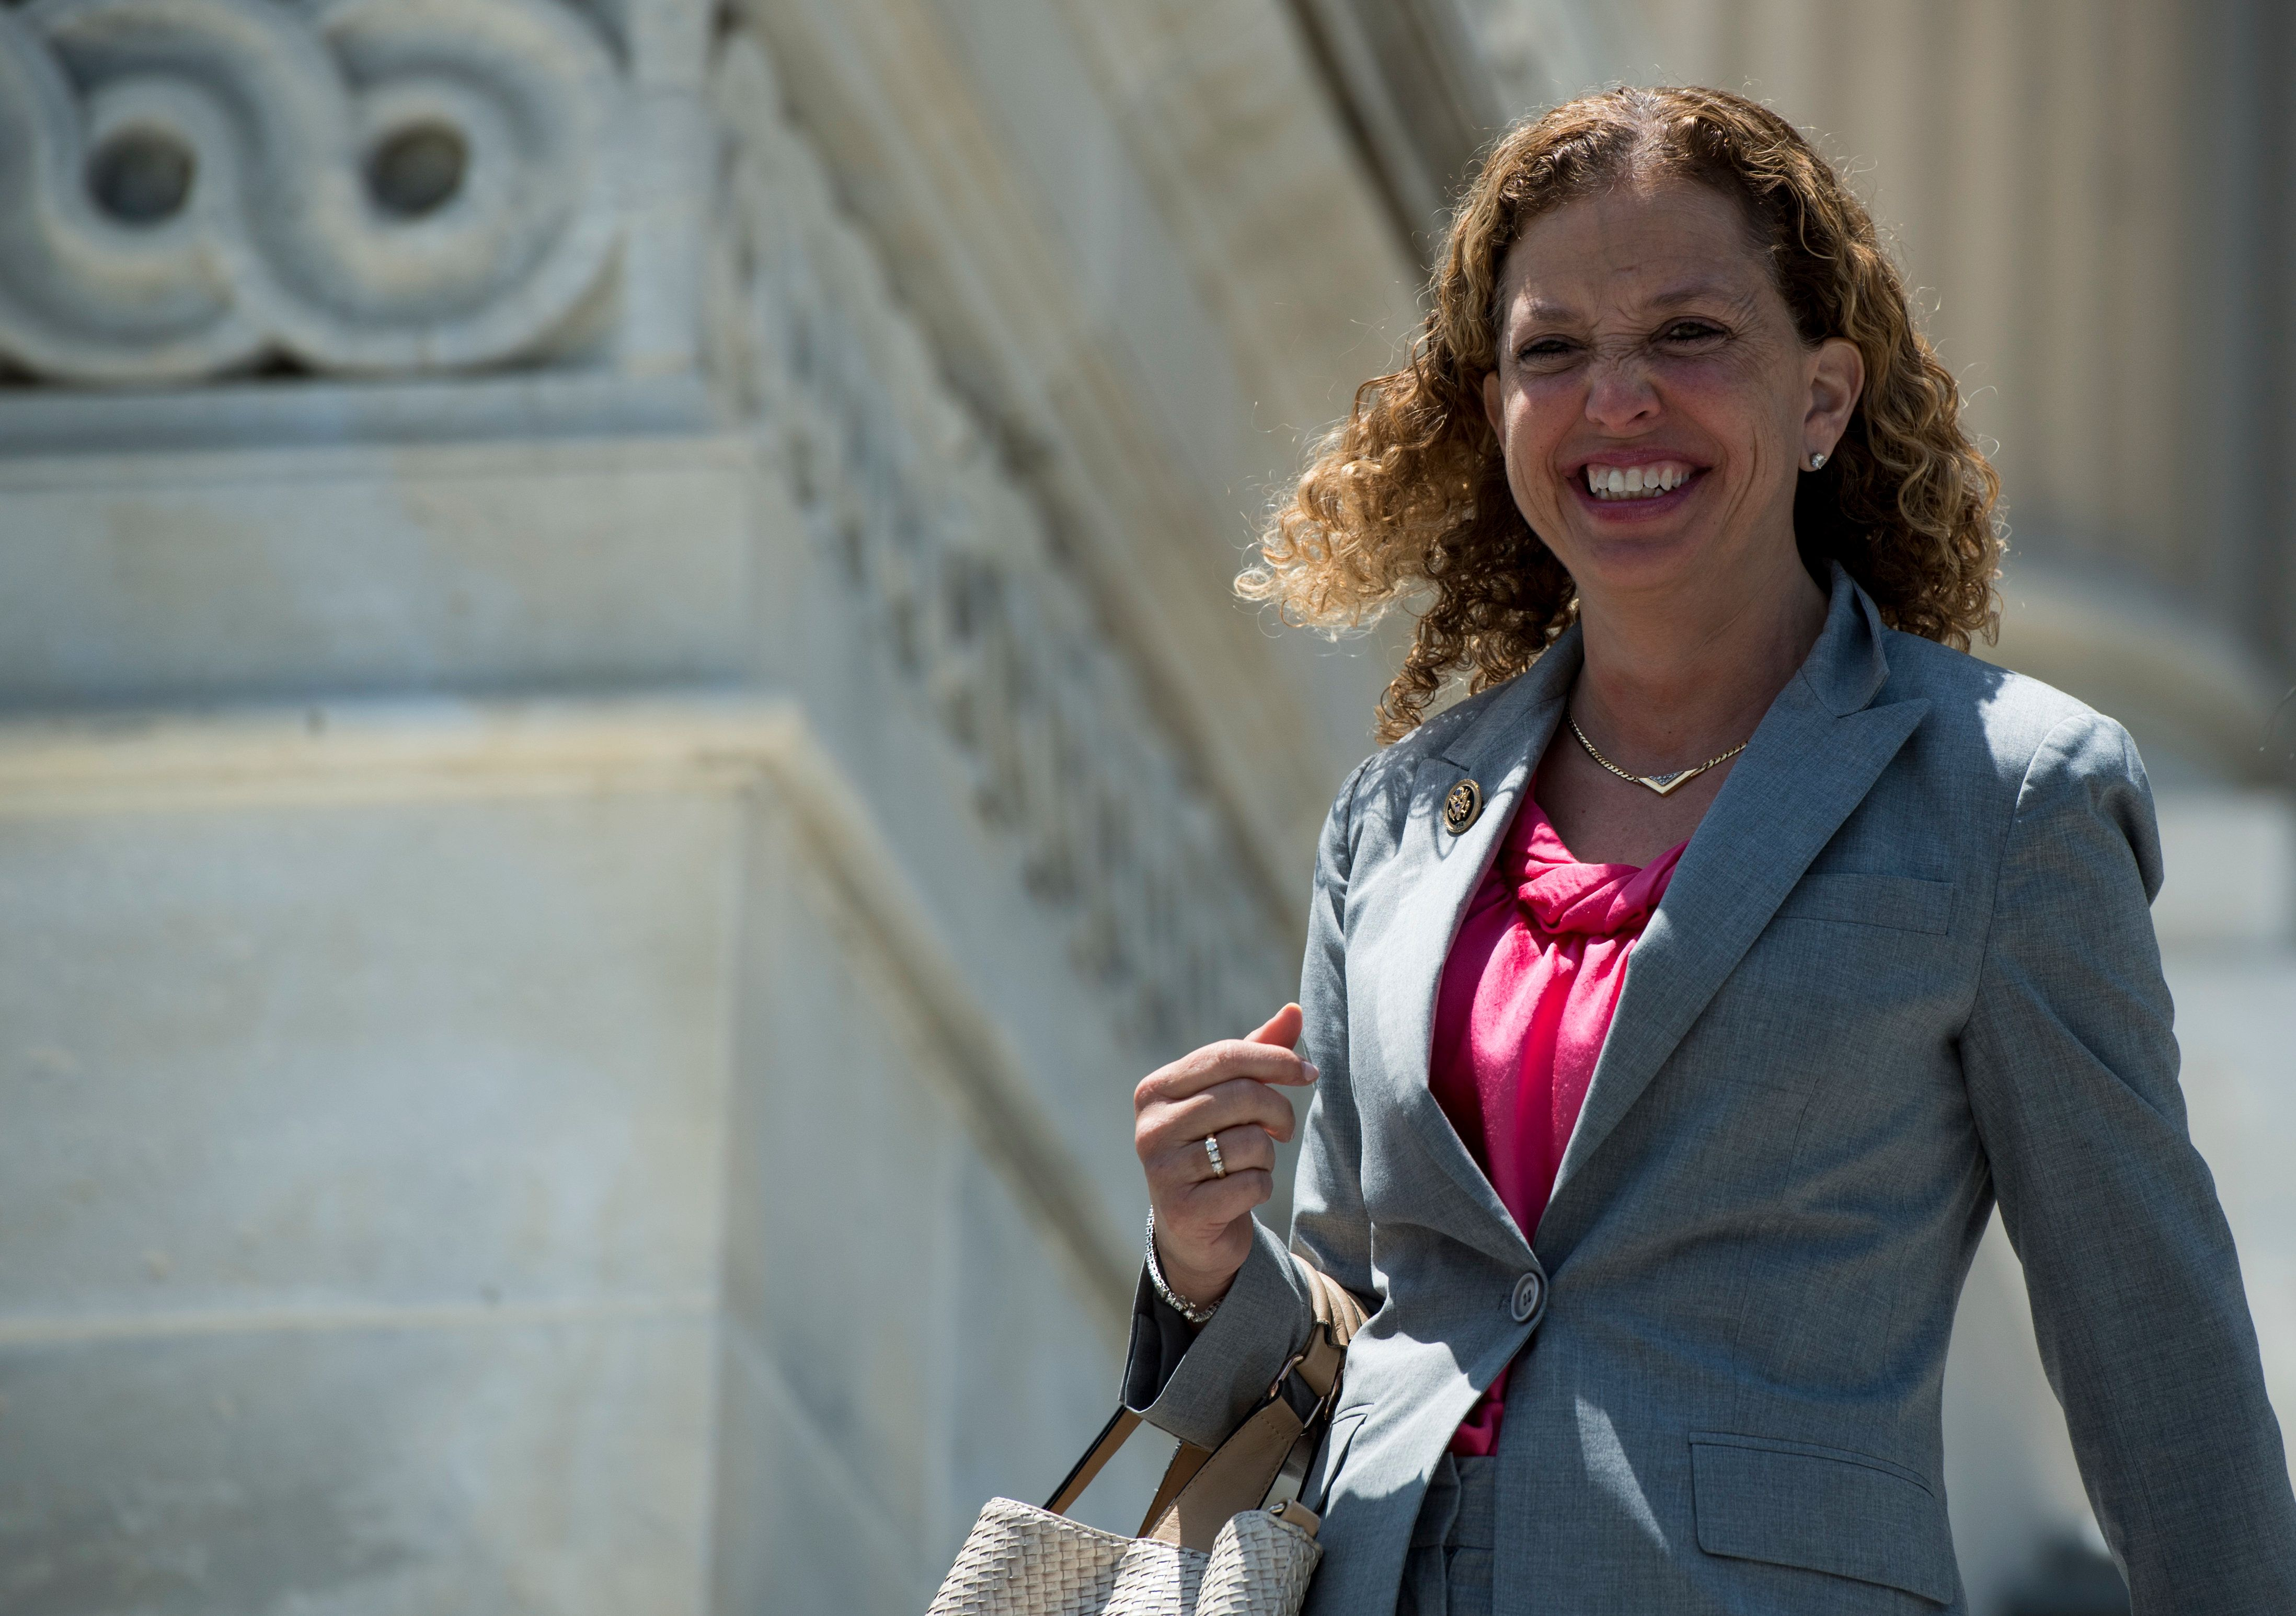 UNITED STATES - JUNE 10: Rep. Debbie Wasserman Schultz, D-Fla., walks down the House steps at the Capitol following the final votes of the week in Congress on Friday, June 10, 2016.  (Photo By Bill Clark/CQ Roll Call)